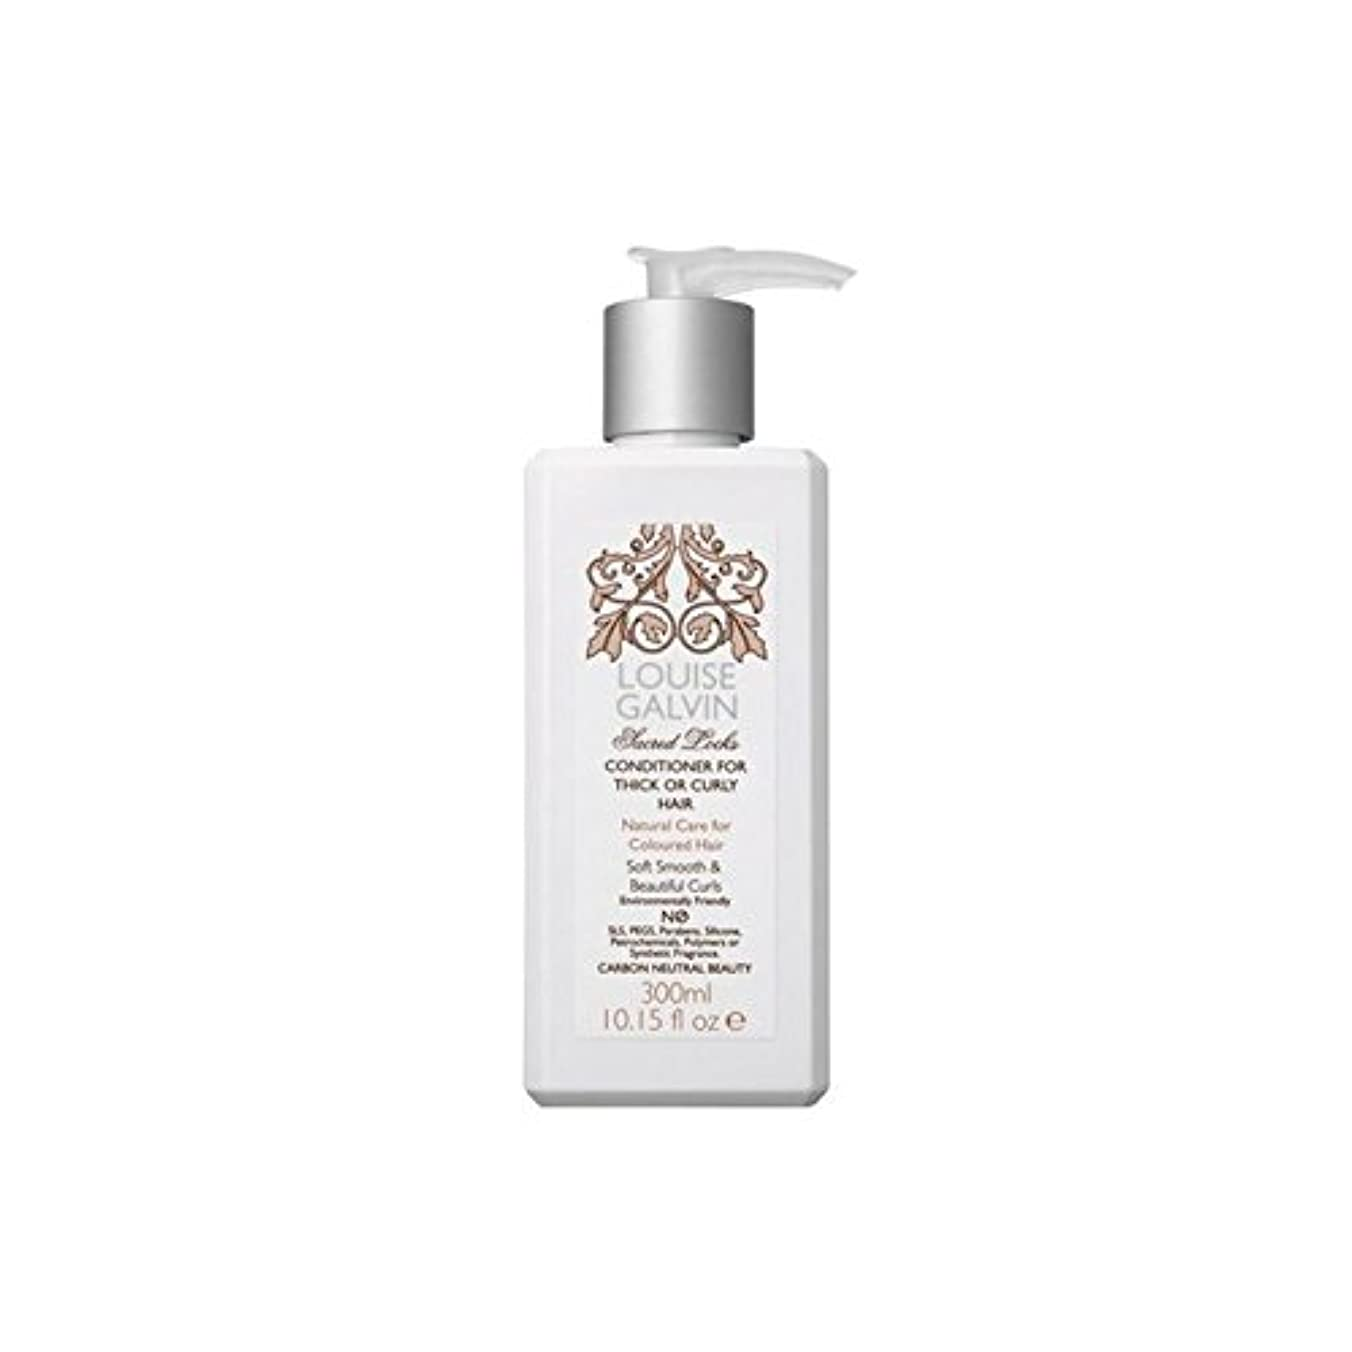 Louise Galvin Conditioner For Thick Or Curly Hair 300ml - 太いまたは巻き毛300ミリリットルのためのルイーズガルビンコンディショナー [並行輸入品]